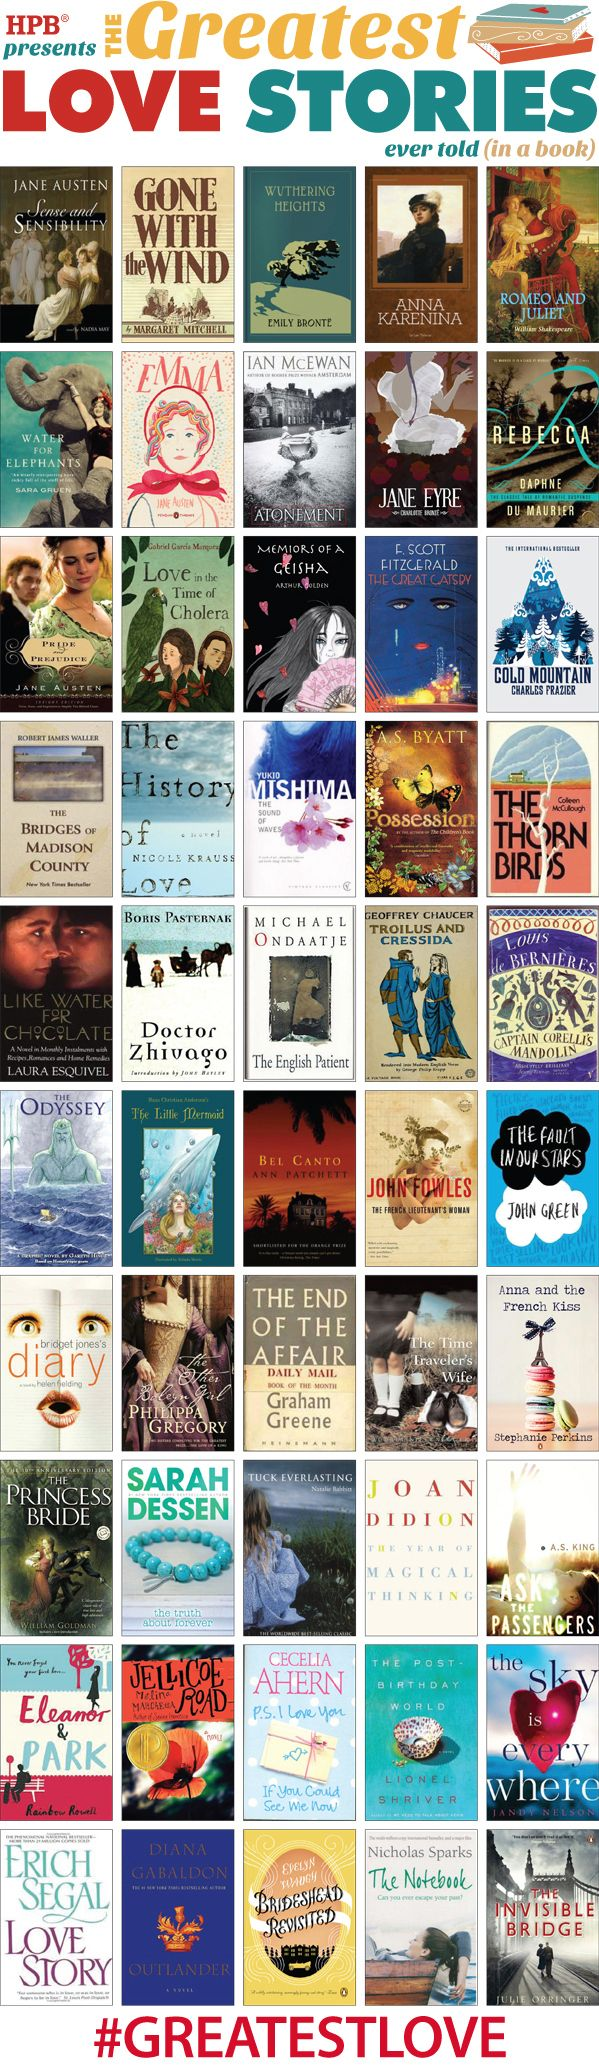 50 Greatest Love Stories Ever Told (in a book)   The Half Price Blog